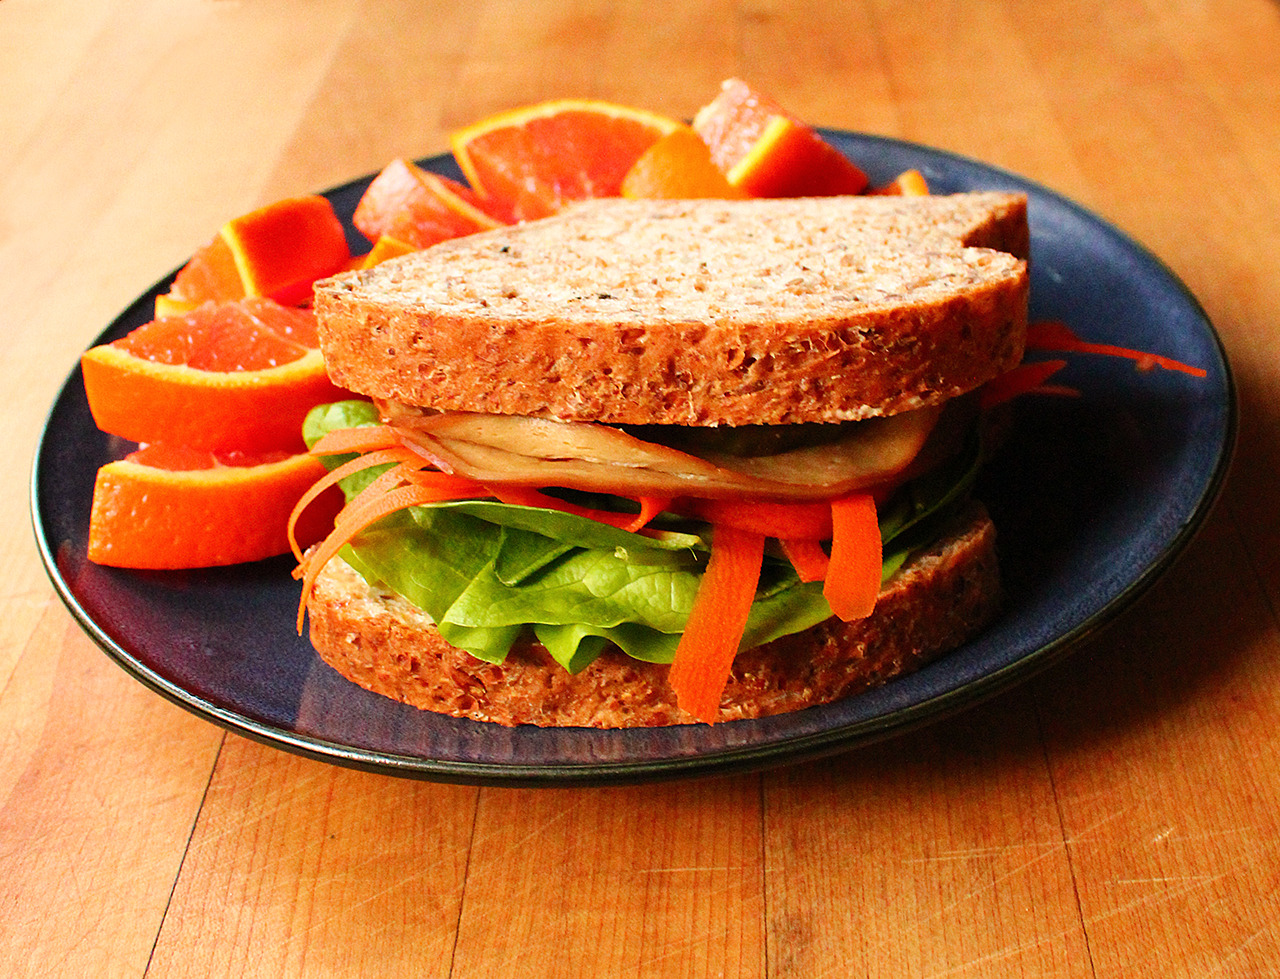 Hickory smoked tofurky sandwich on sprouted whole grain bread with ...